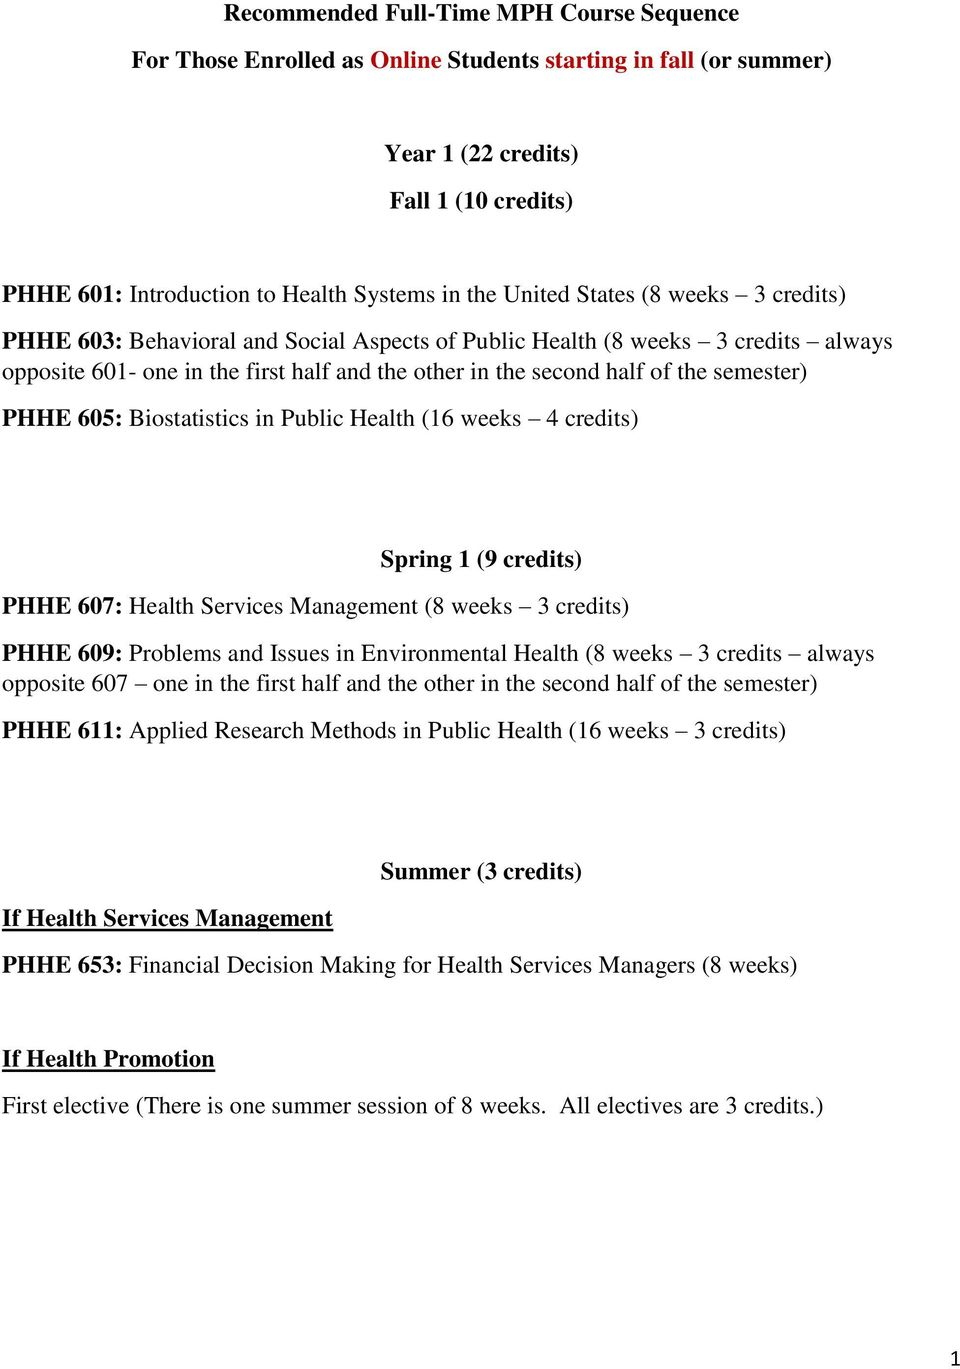 semester) PHHE 605: Biostatistics in Public Health (16 weeks 4 credits) Spring 1 (9 credits) PHHE 607: Health Services Management (8 weeks 3 credits) PHHE 609: Problems and Issues in Environmental